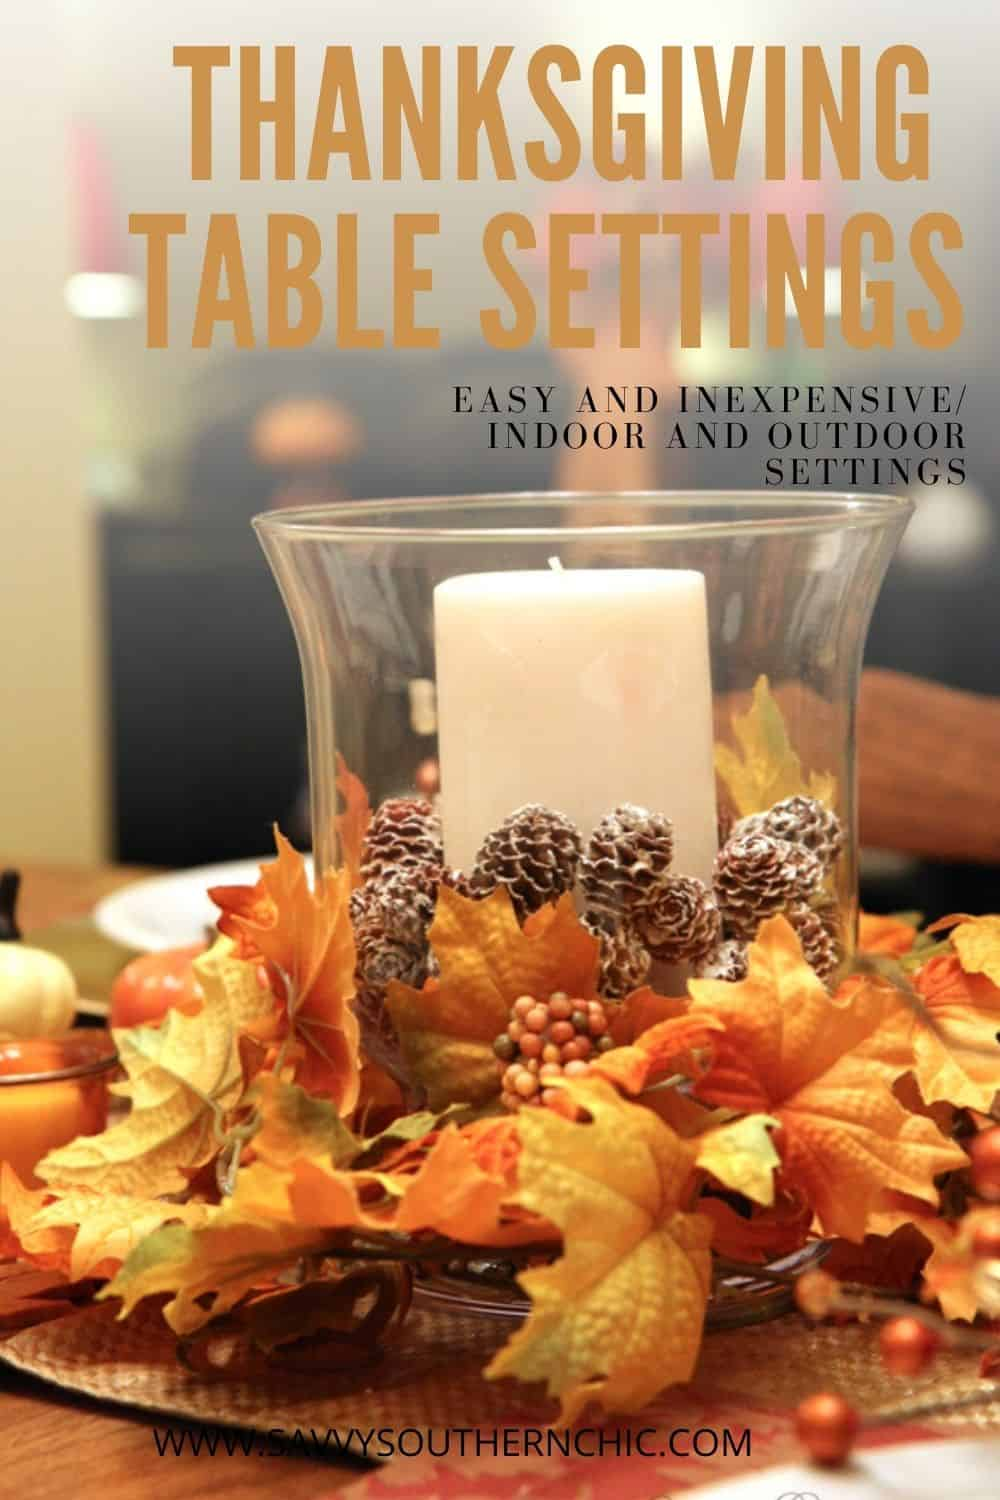 Easy and Inexpensive Thanksgiving Table Settings